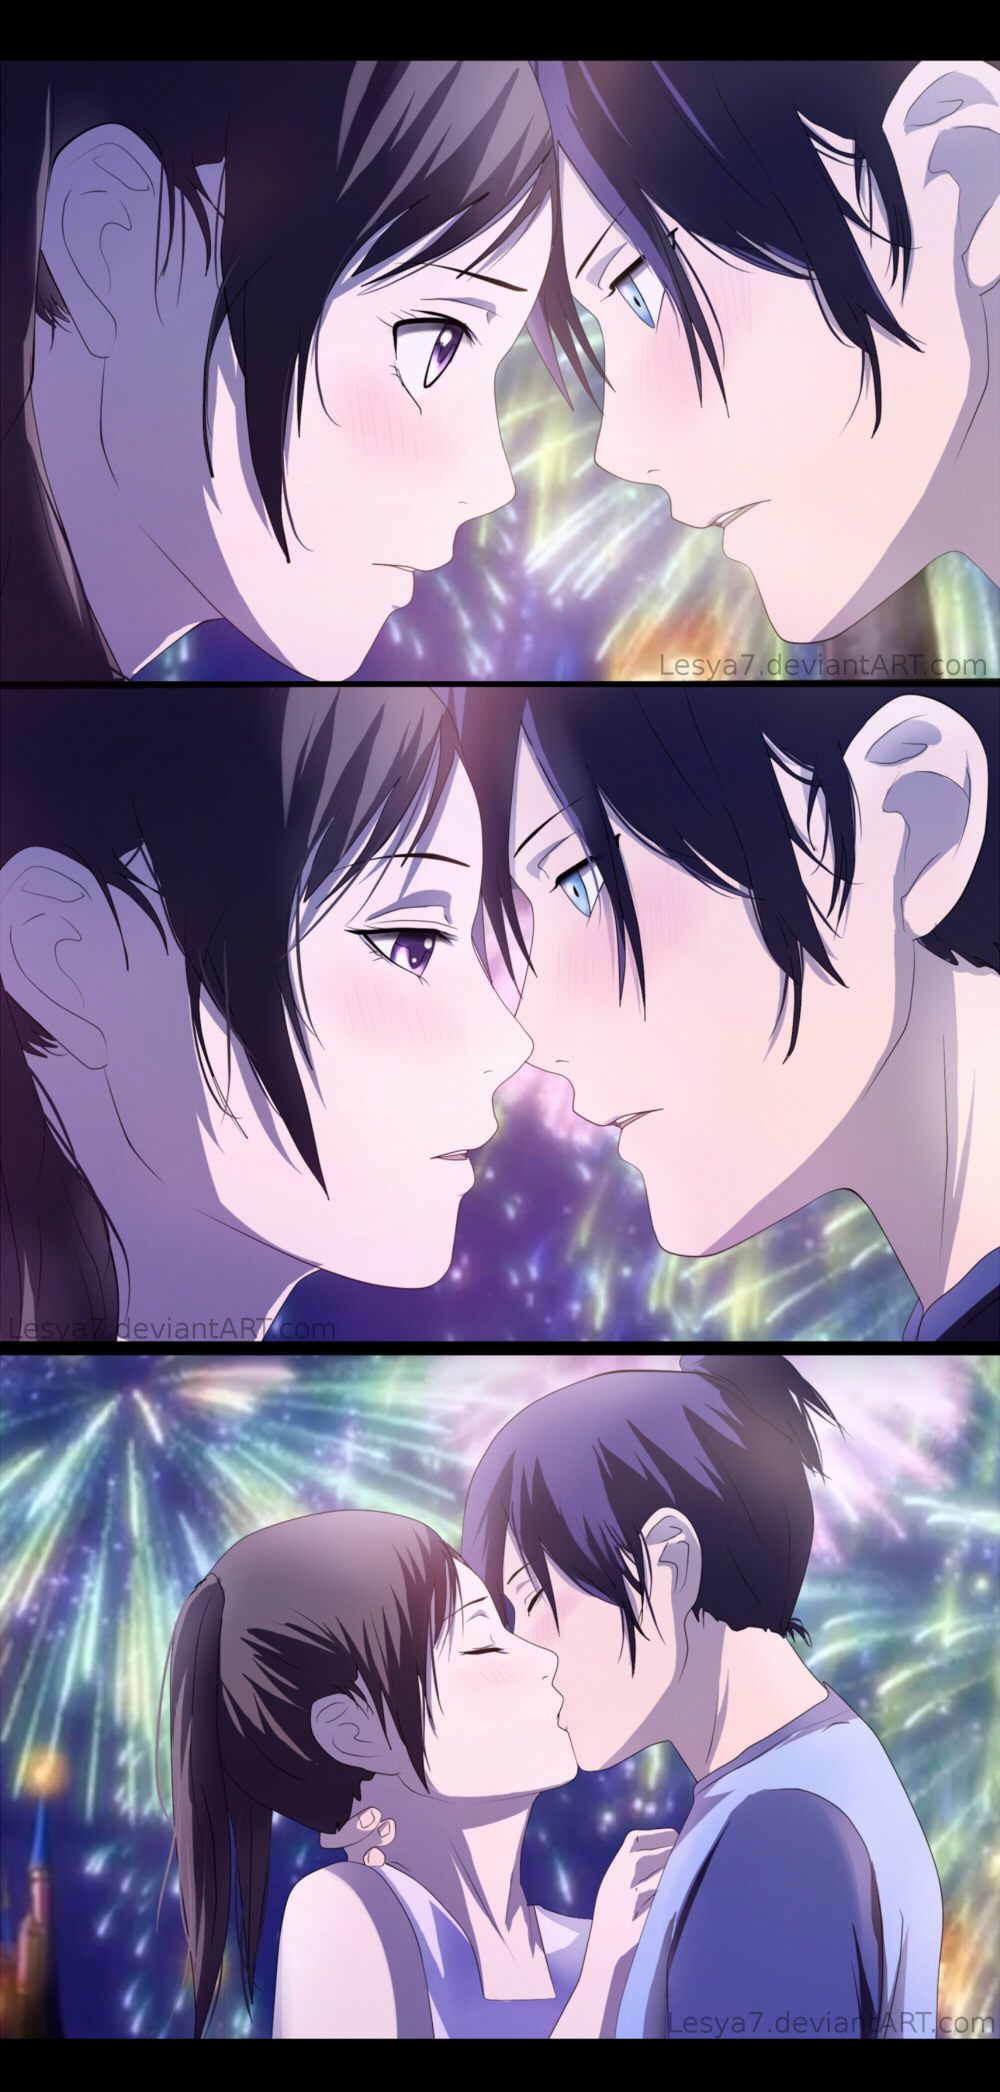 Noragami yato x hiyori kiss by lesya7 on deviantart